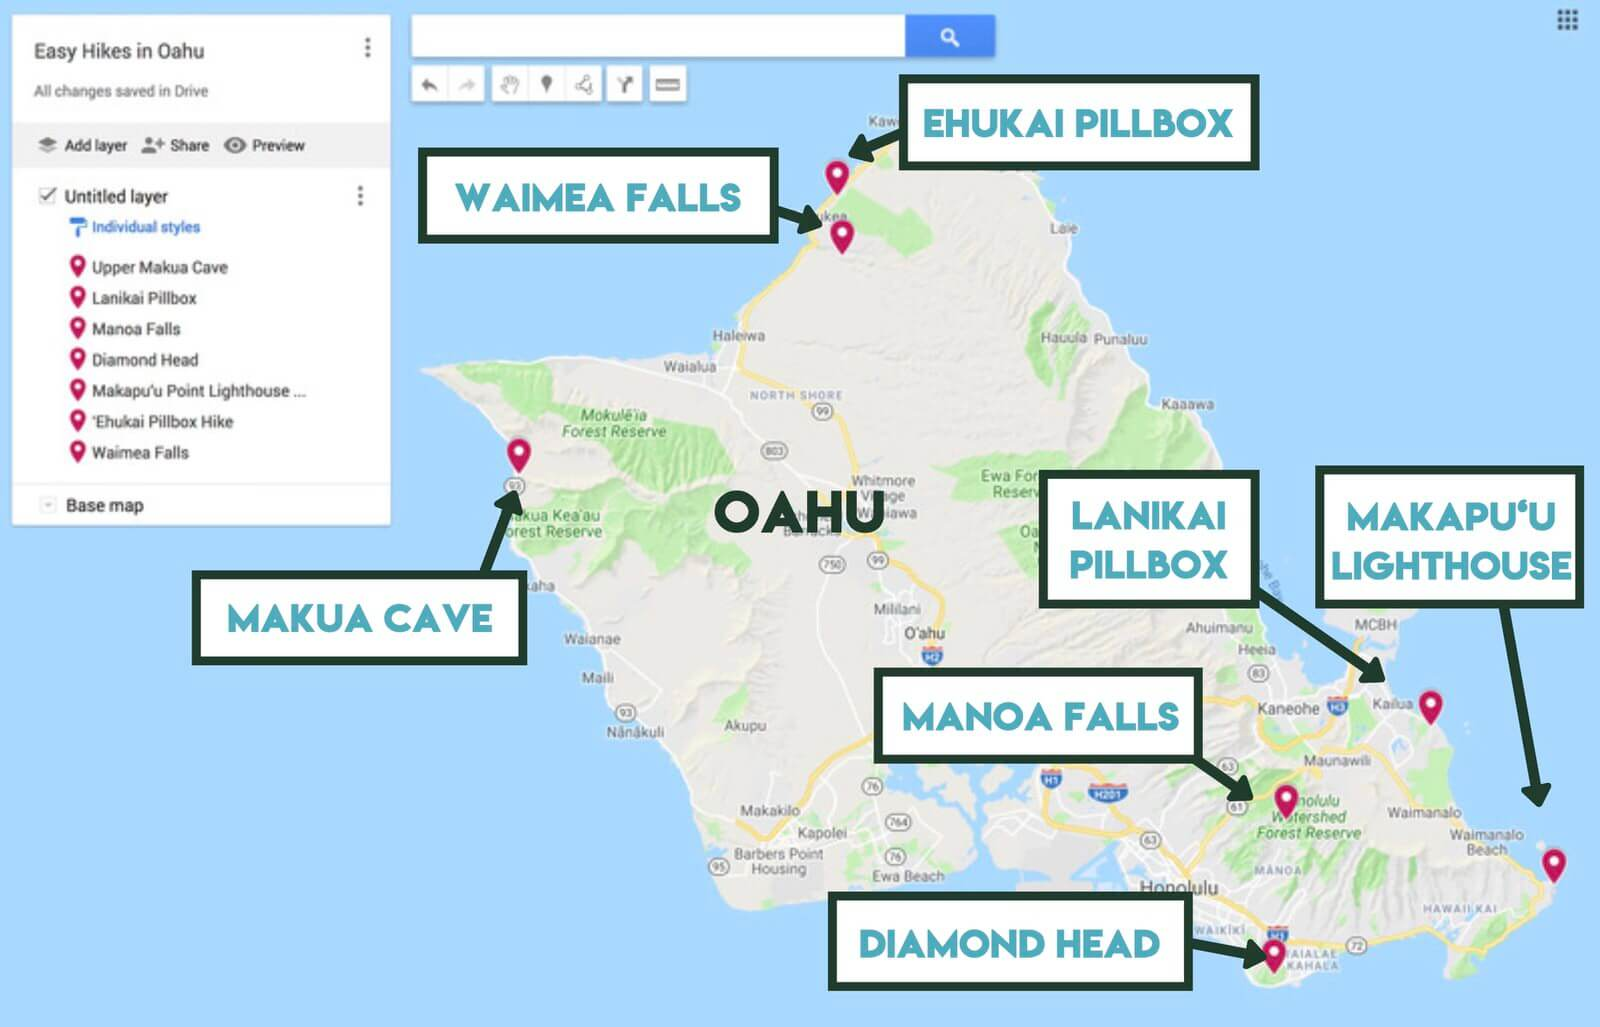 picture regarding Oahu Map Printable titled 7 Eye-catching Straightforward Hikes in just Oahu, Hawaii She Desires Of Alpine